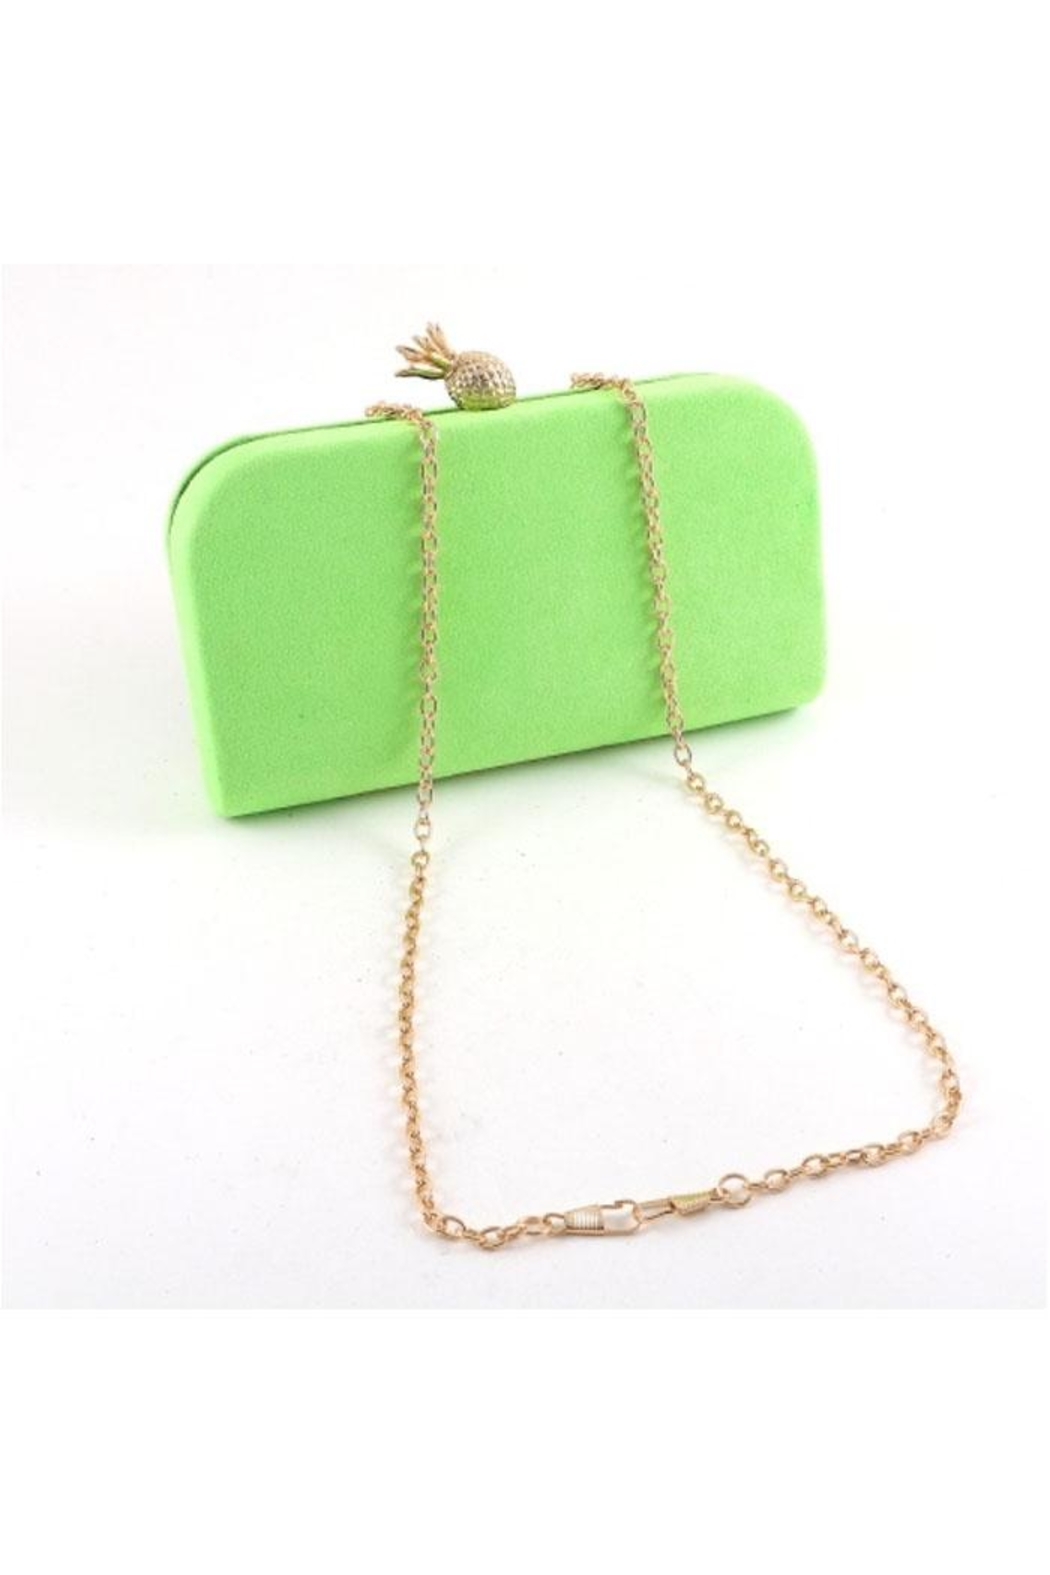 Madison Avenue Accessories Neon Pineapple Clutch - Front Full Image